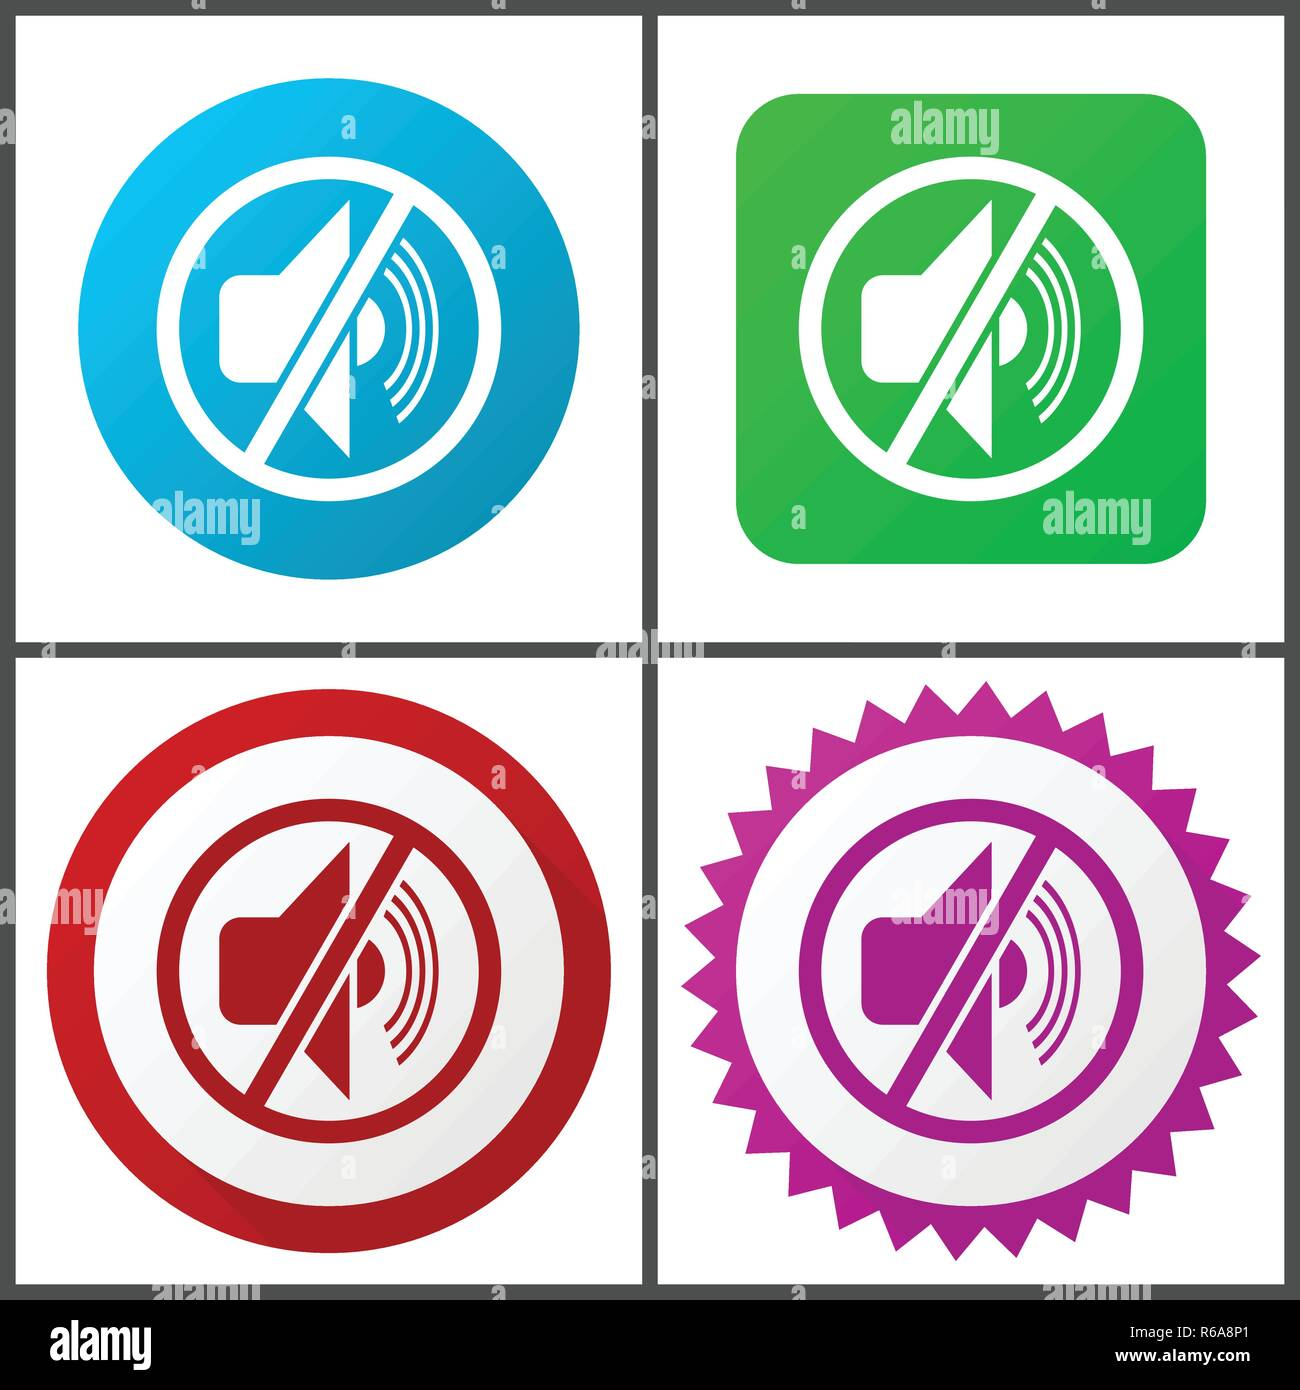 Mute red, blue, green and pink vector icon set. Web icons. Flat design signs and symbols easy to edit - Stock Image